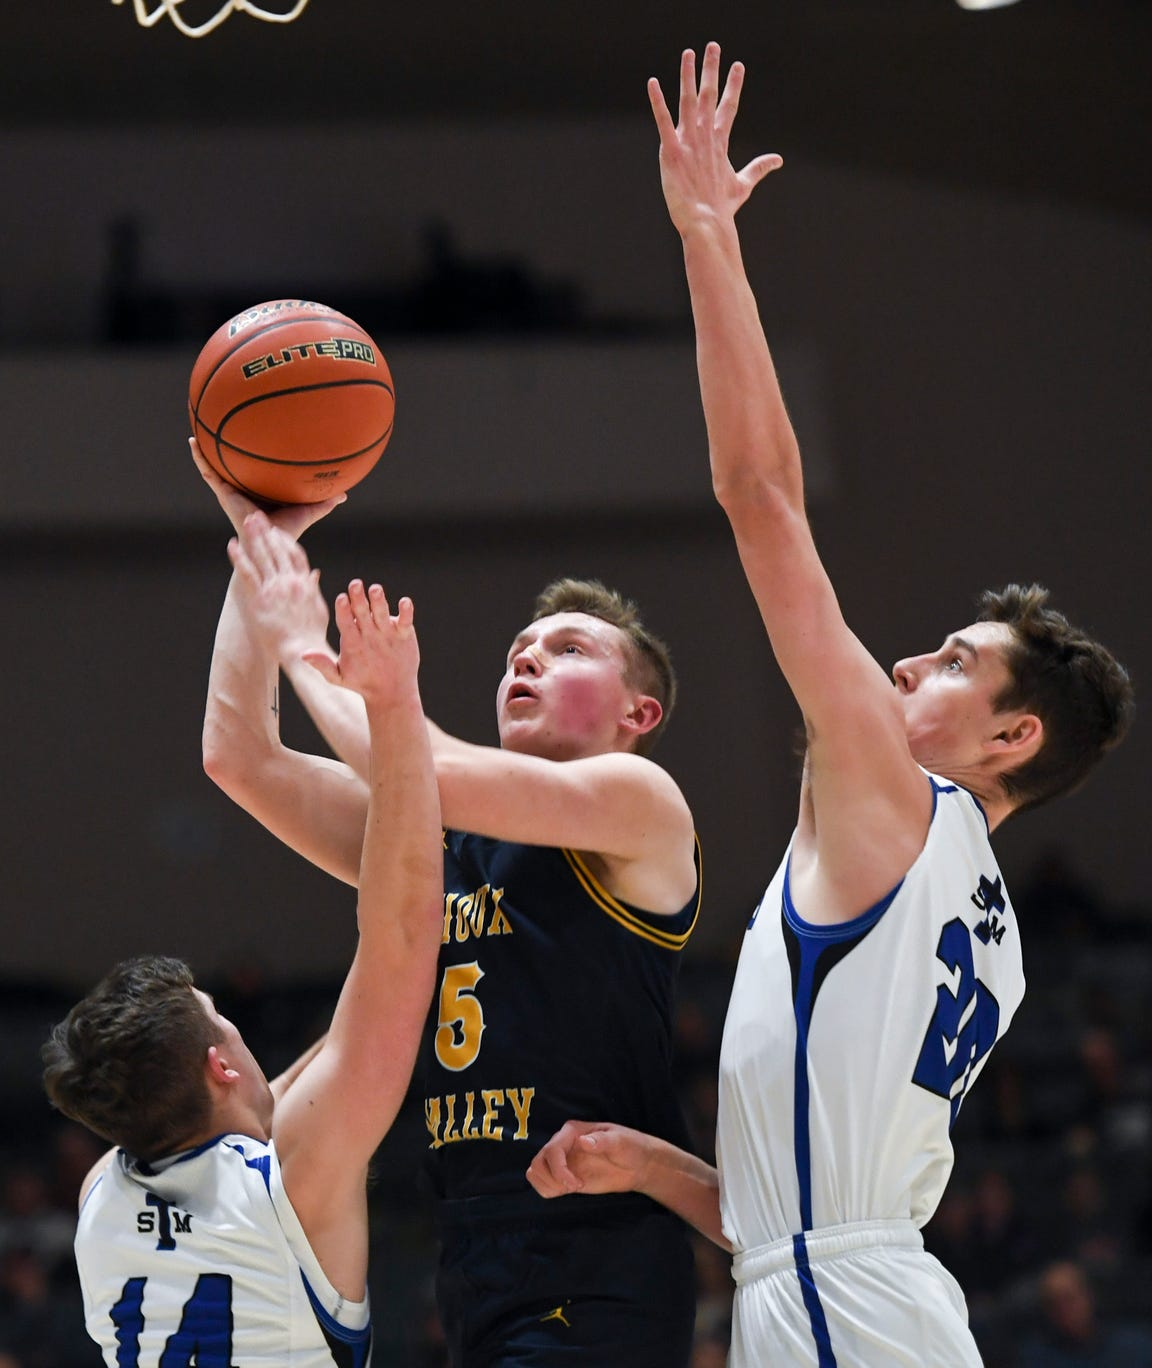 Sioux Valley's Max Nielson (5) goes up for a basket during the game against St. Thomas More on Saturday, Jan. 25, 2020 at the Corn Palace in Mitchell, S.D.